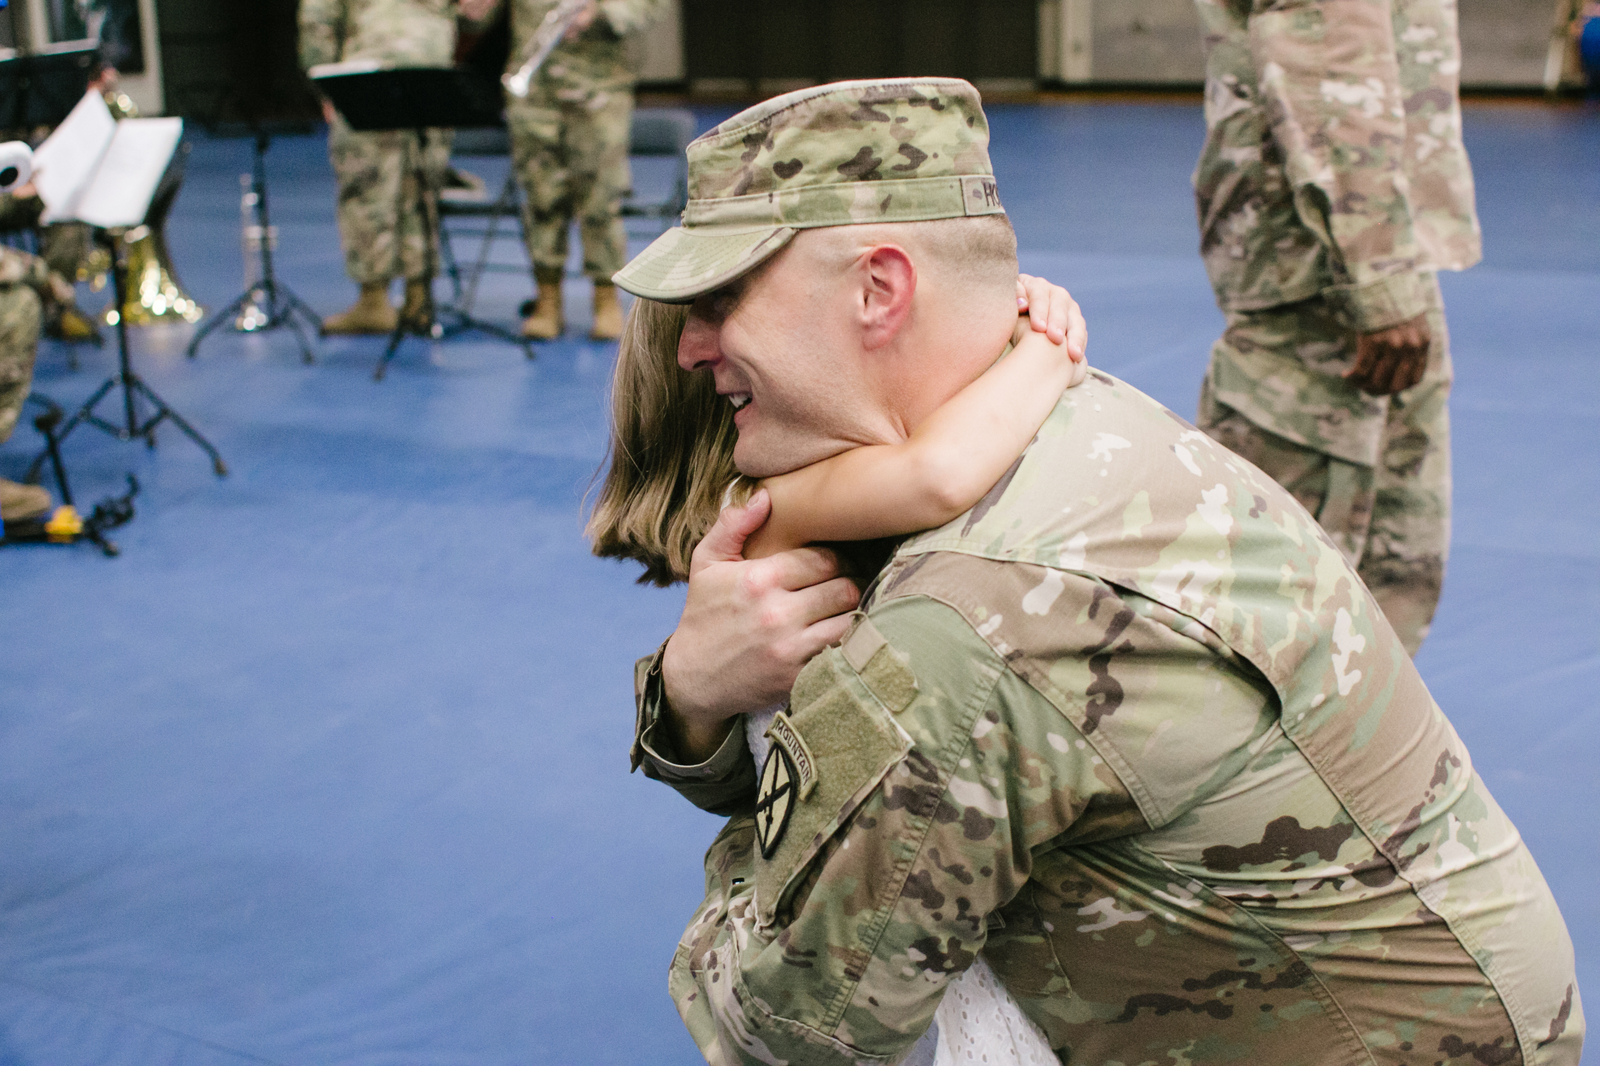 Fort Drum New York 10th Mountain Division Military Homecoming Family Portraits Sarah Lisle Photography